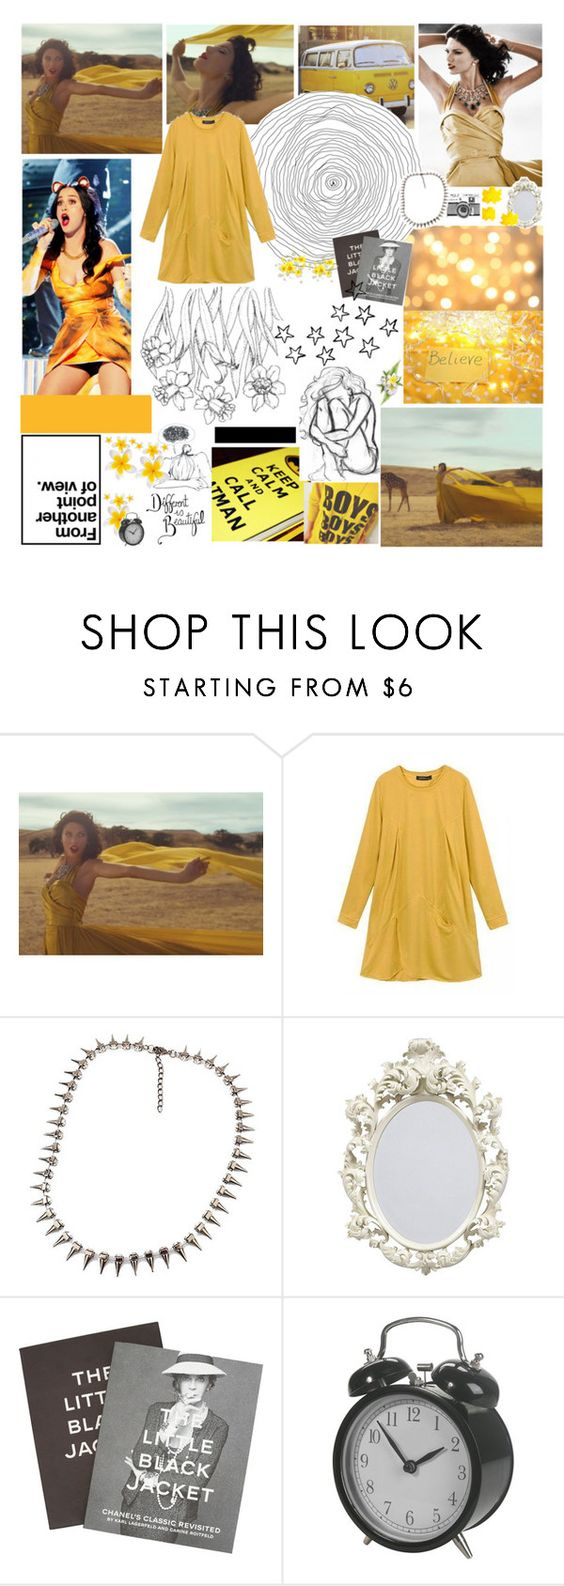 """""""Taylor Swift: Wildest Dreams"""" by johnnaly-silva ❤ liked on Polyvore featuring Steidl, taylorswift, katyperry, mustard and wildestdrams"""